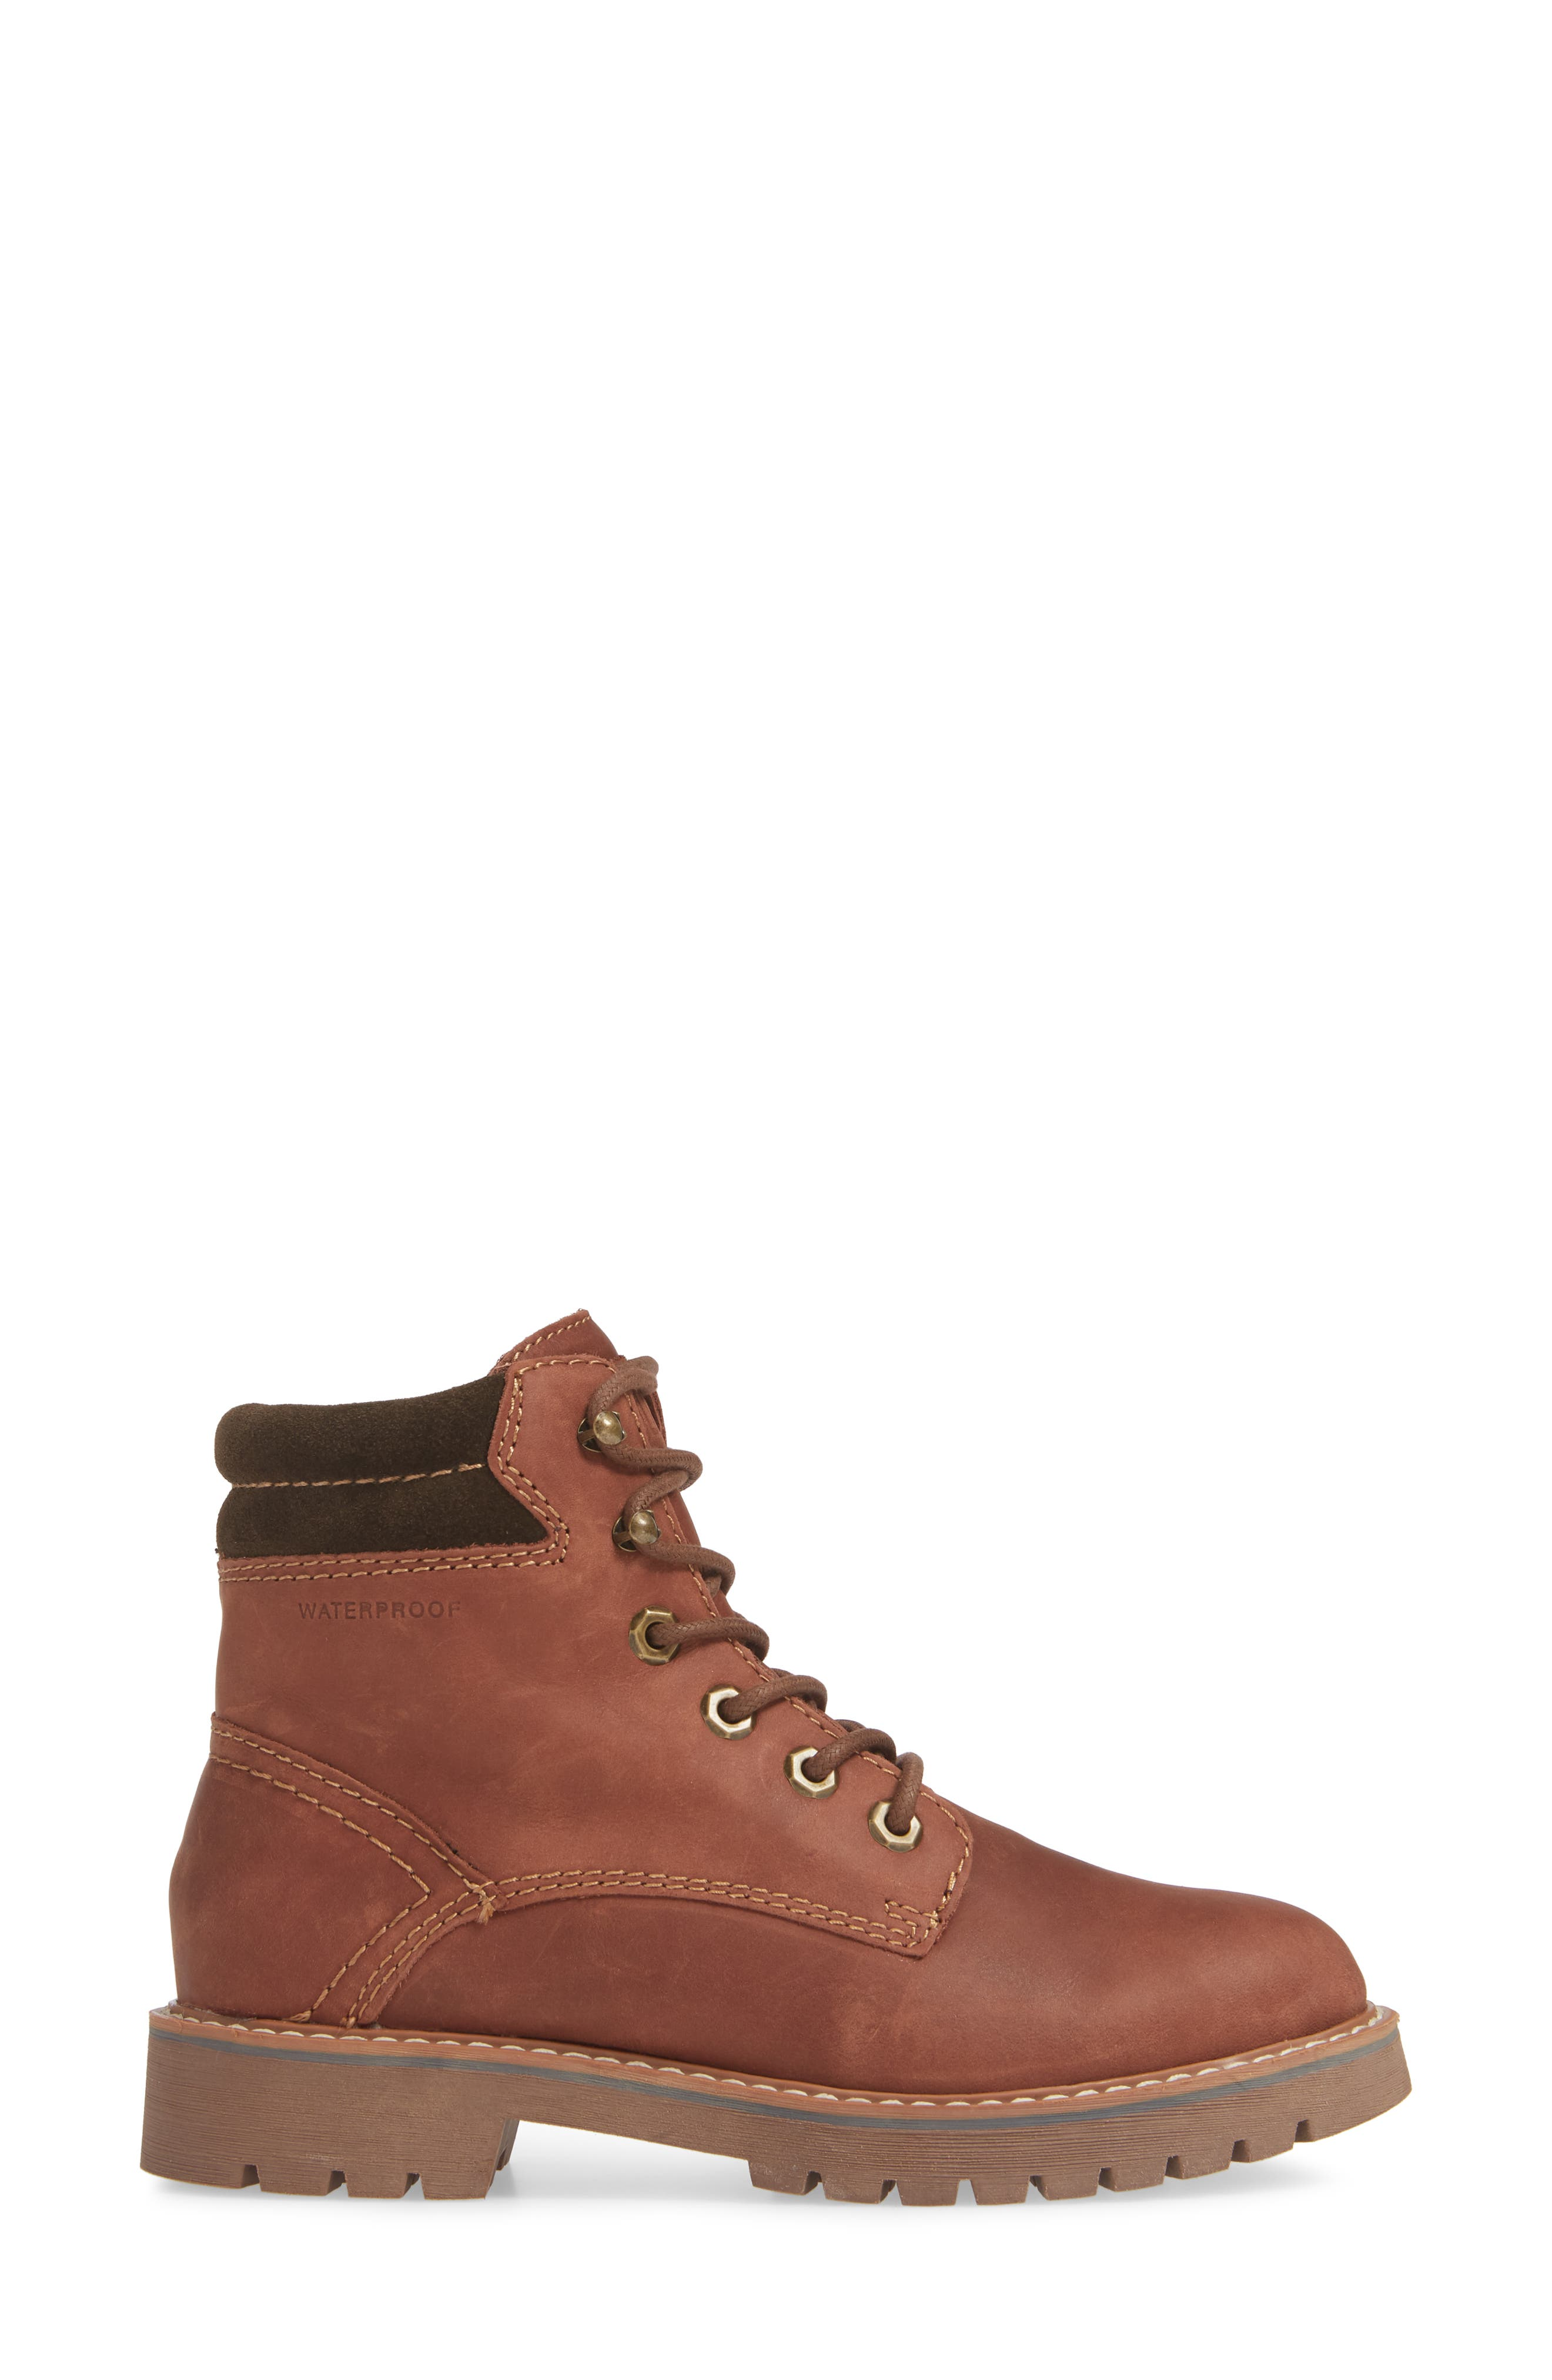 Heston Waterproof Insulated Hiking Boot,                             Alternate thumbnail 3, color,                             BROWN LEATHER